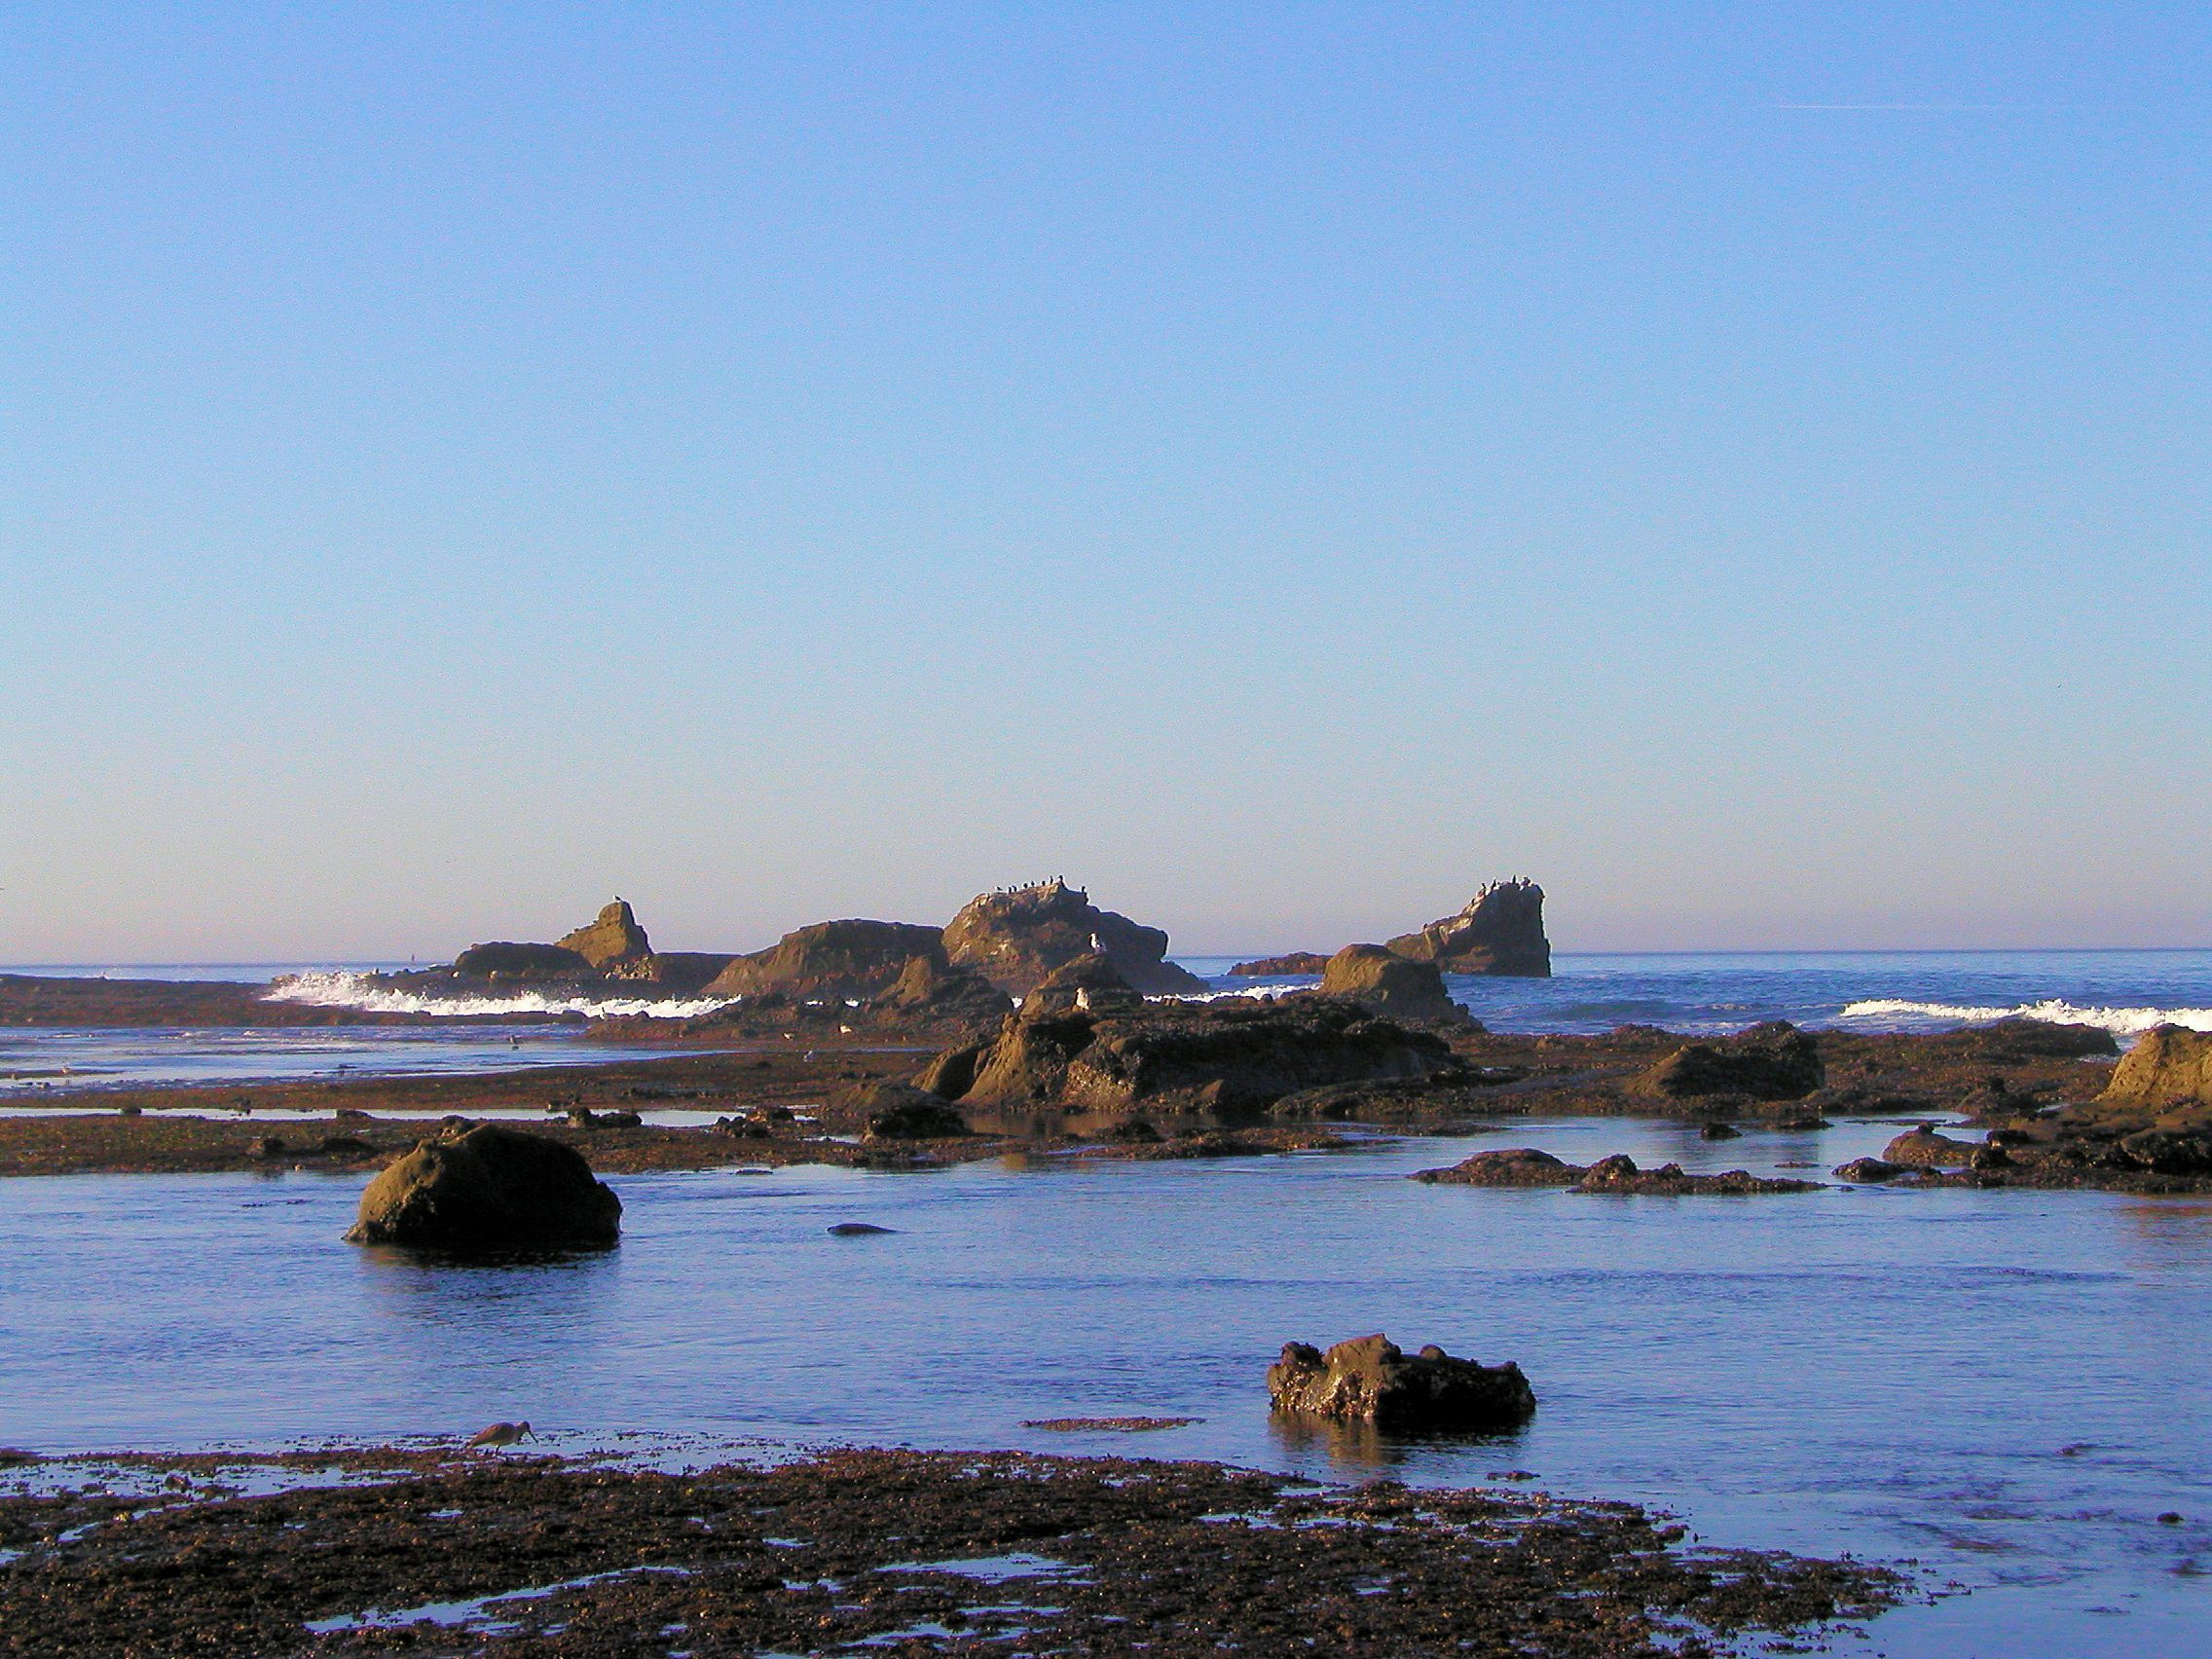 Sail rock at Mavericks beach, Princeton Favorite Places